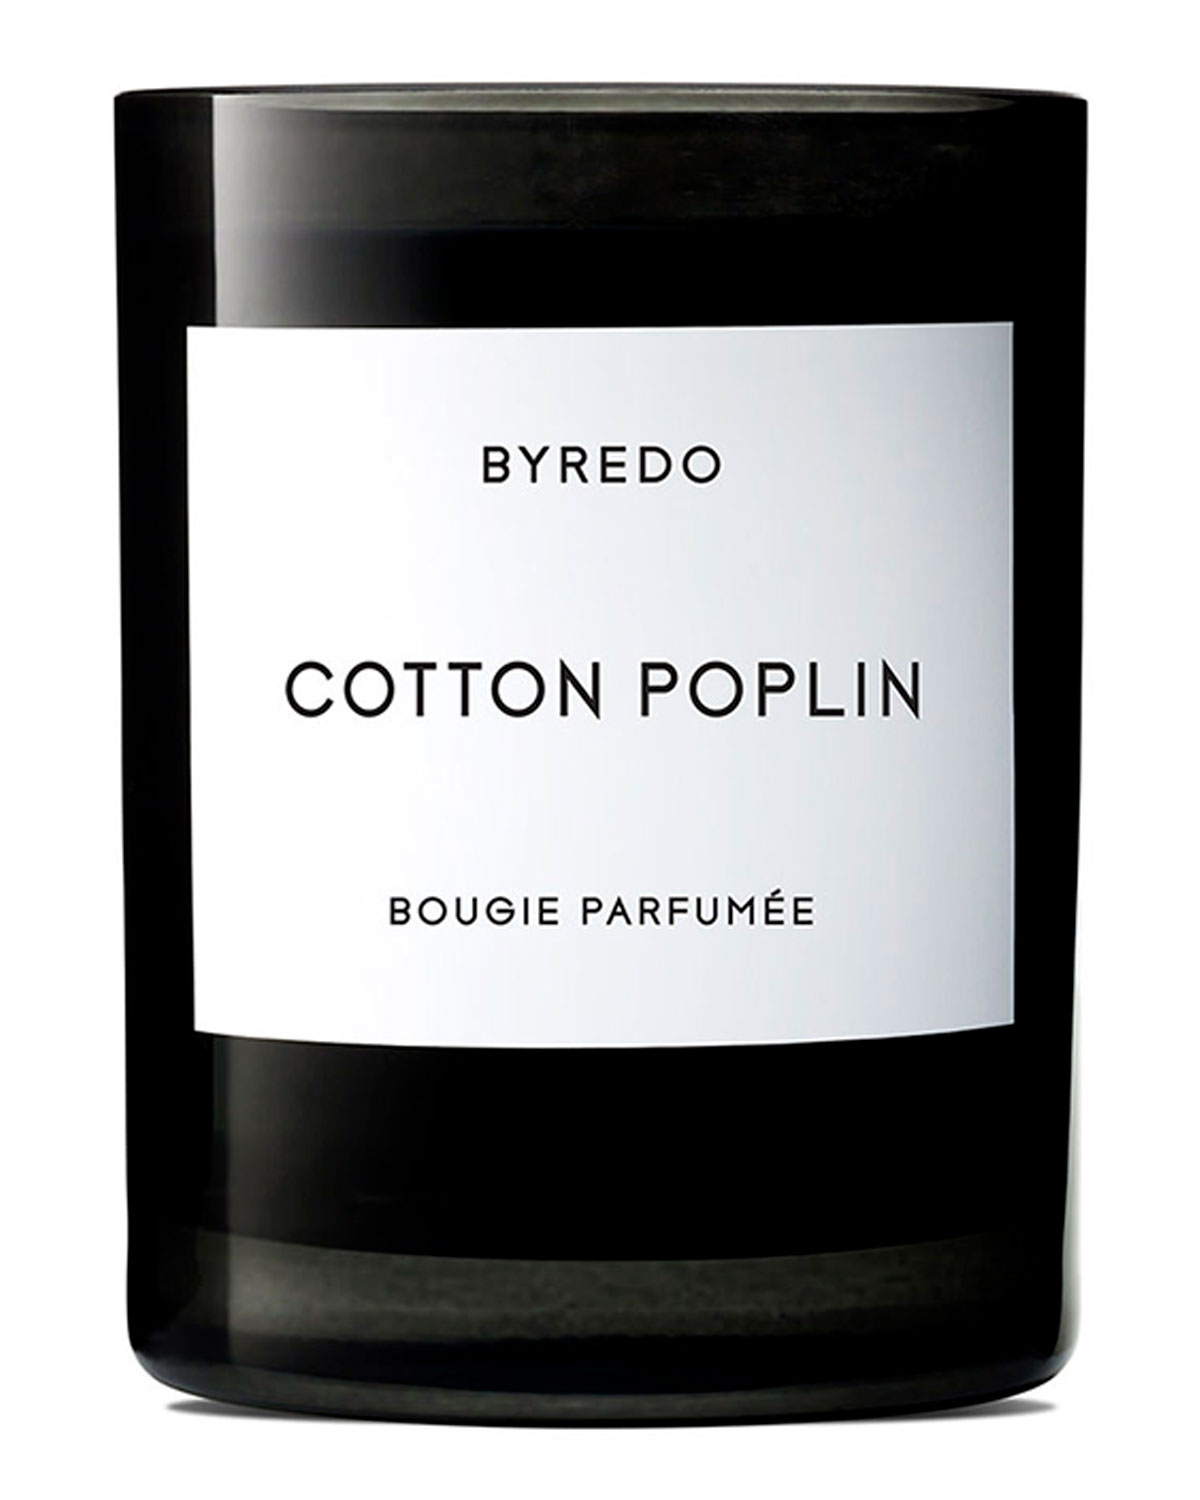 Byredocotton Poplin Bougie Parfumee Scented Candle 240g